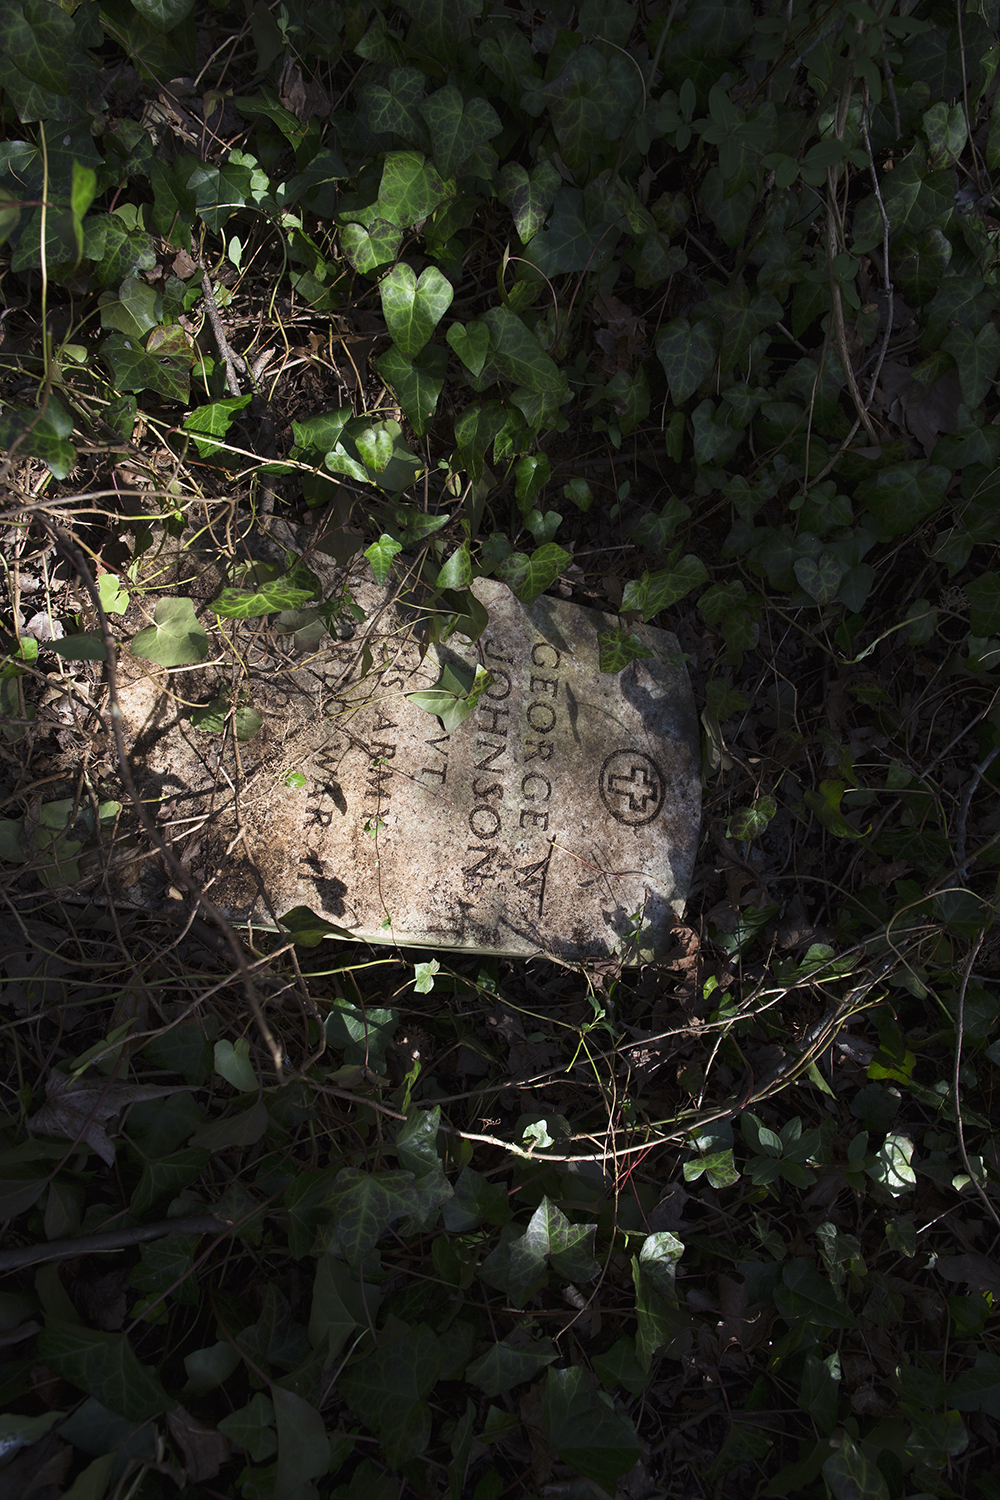 Toppled headstone, East End Cemetery, Henrico County and Richmond, Virginia, February 2015. ©brianpalmer.photos 2015